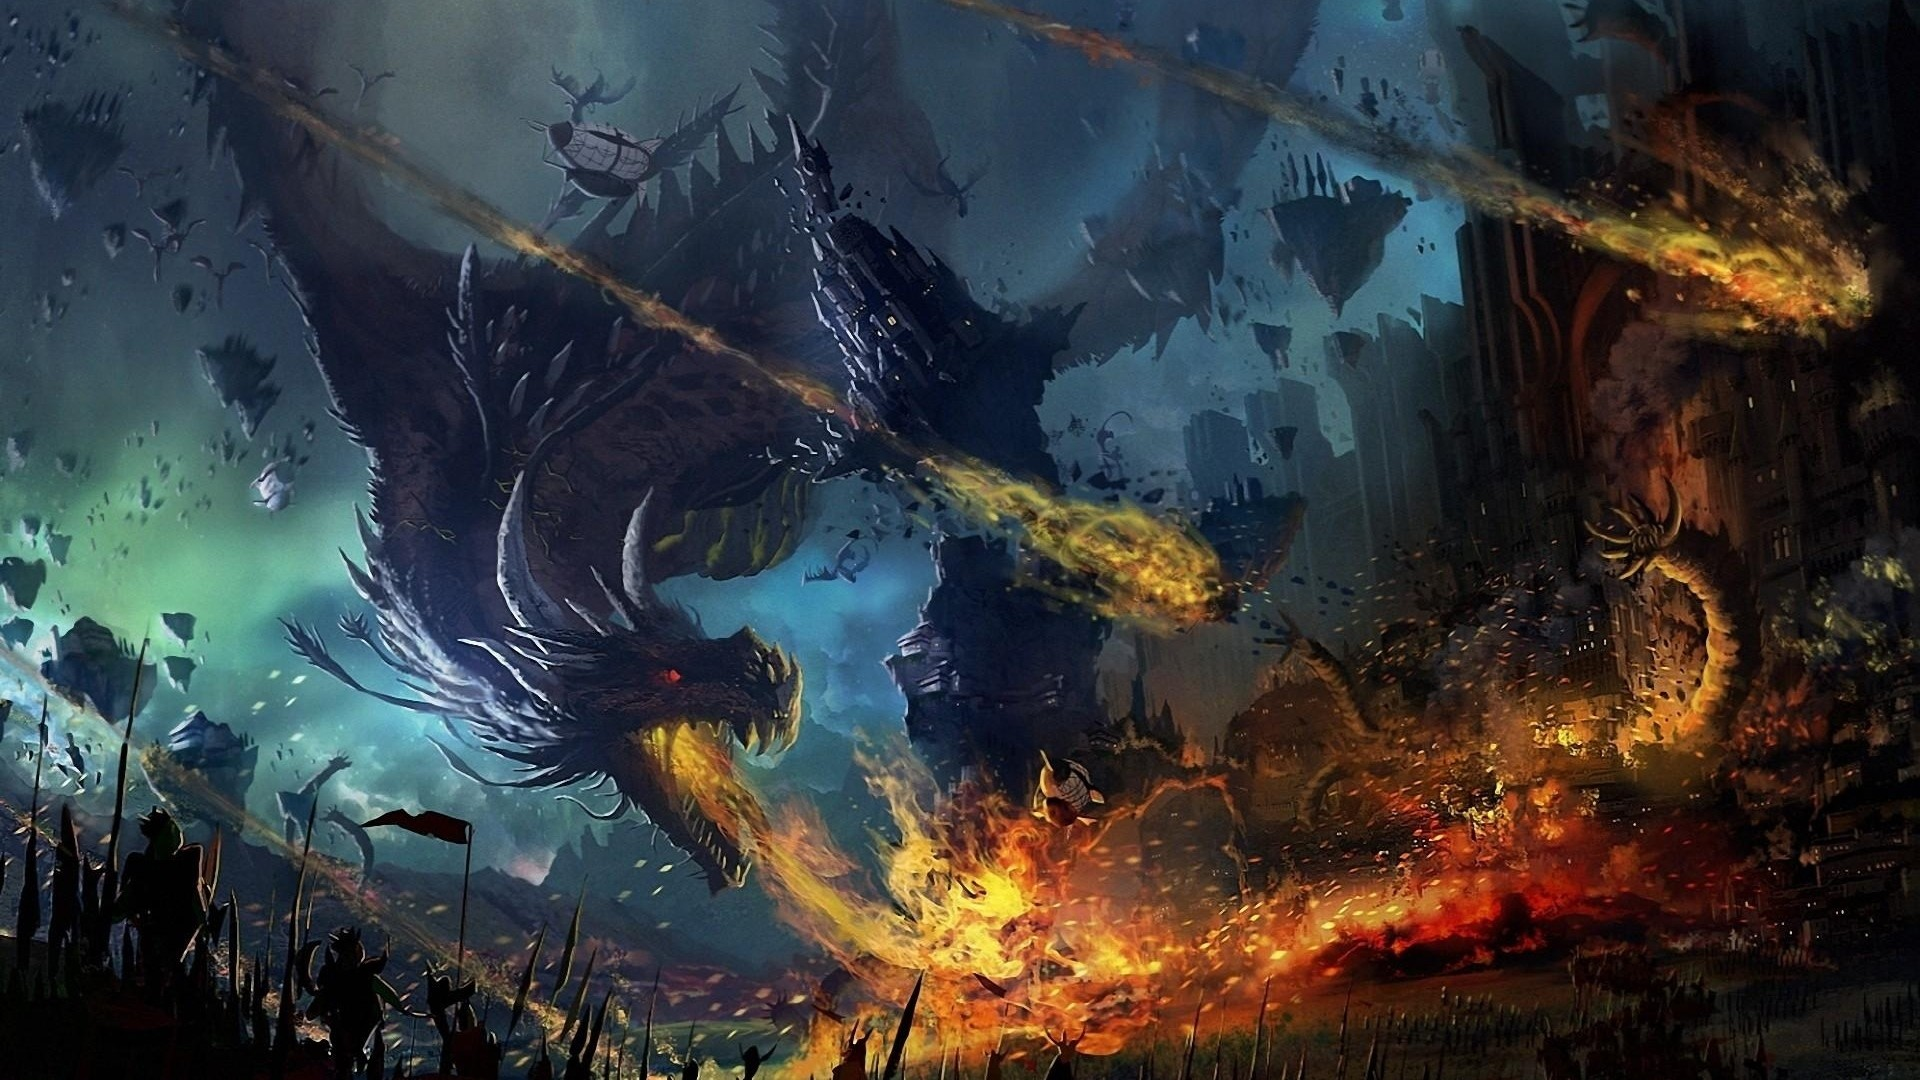 1920x1080 Wallpaper: Dragon Wallpaper 1920x1080 (70+ Images